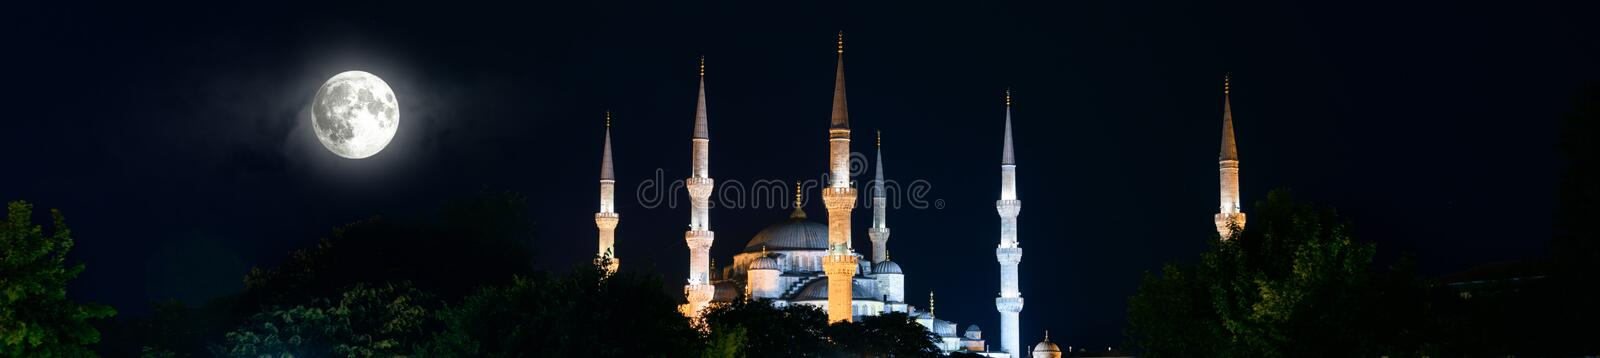 Blue Mosque or Sultanahmet at night, Istanbul, Turkey. Illuminated minarets and full moon on a dark sky background. Panoramic view of the famous mosque in stock images